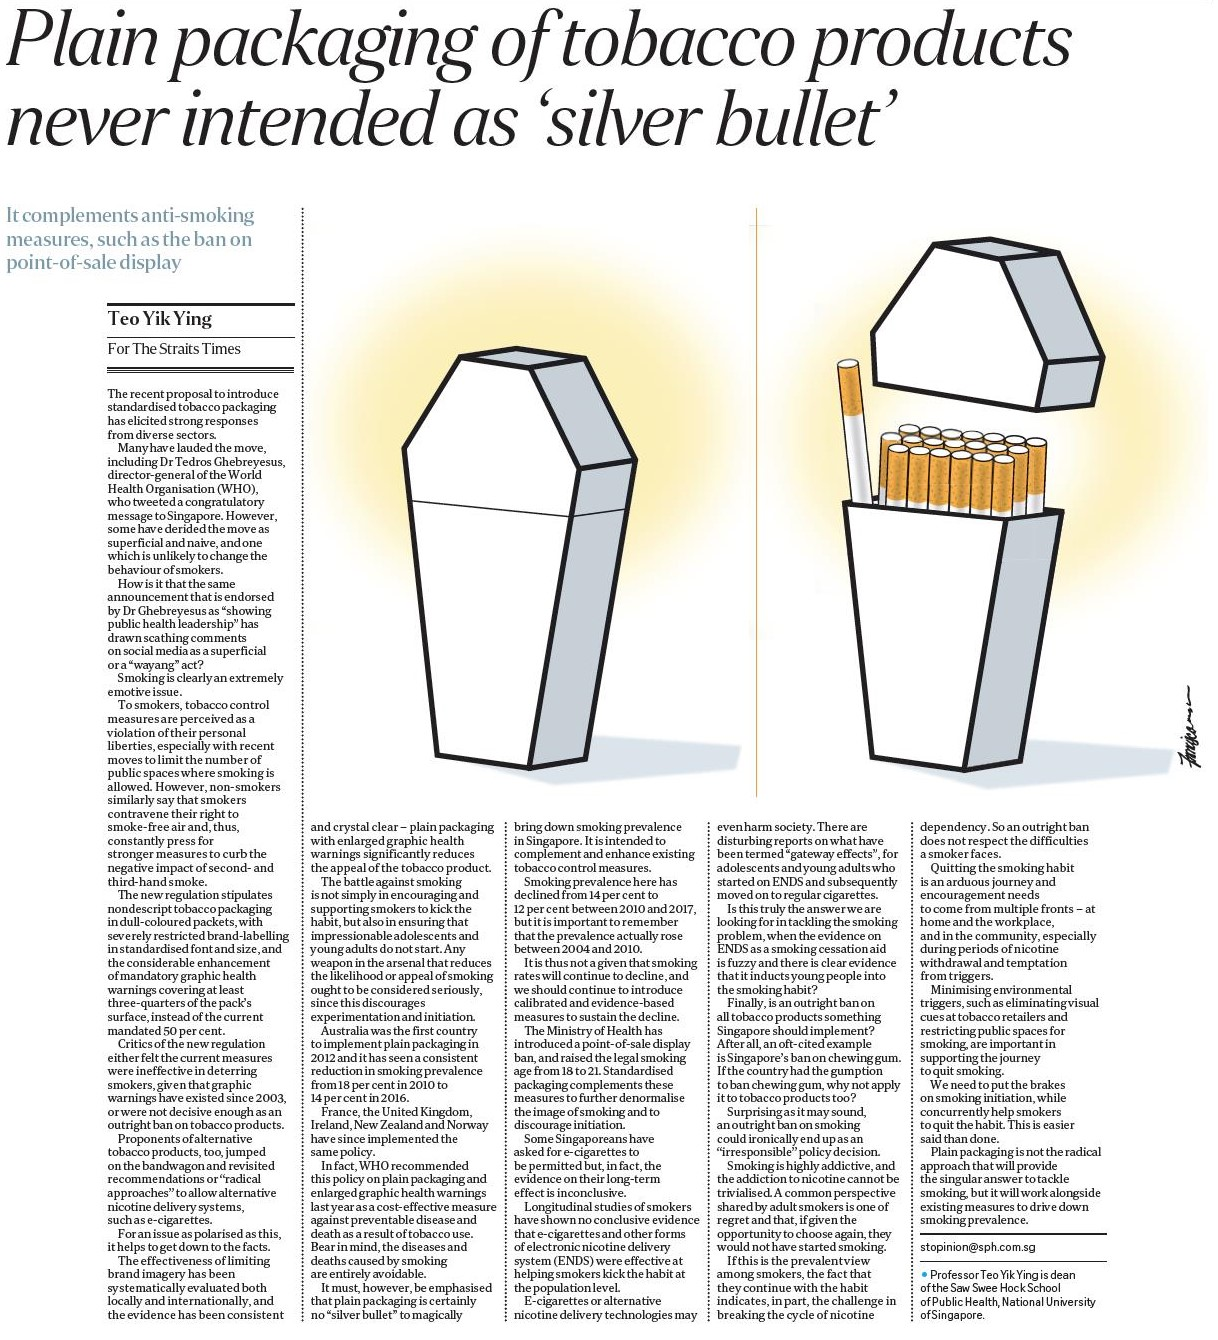 Plain packaging of tobacco products never intended as silver bullet